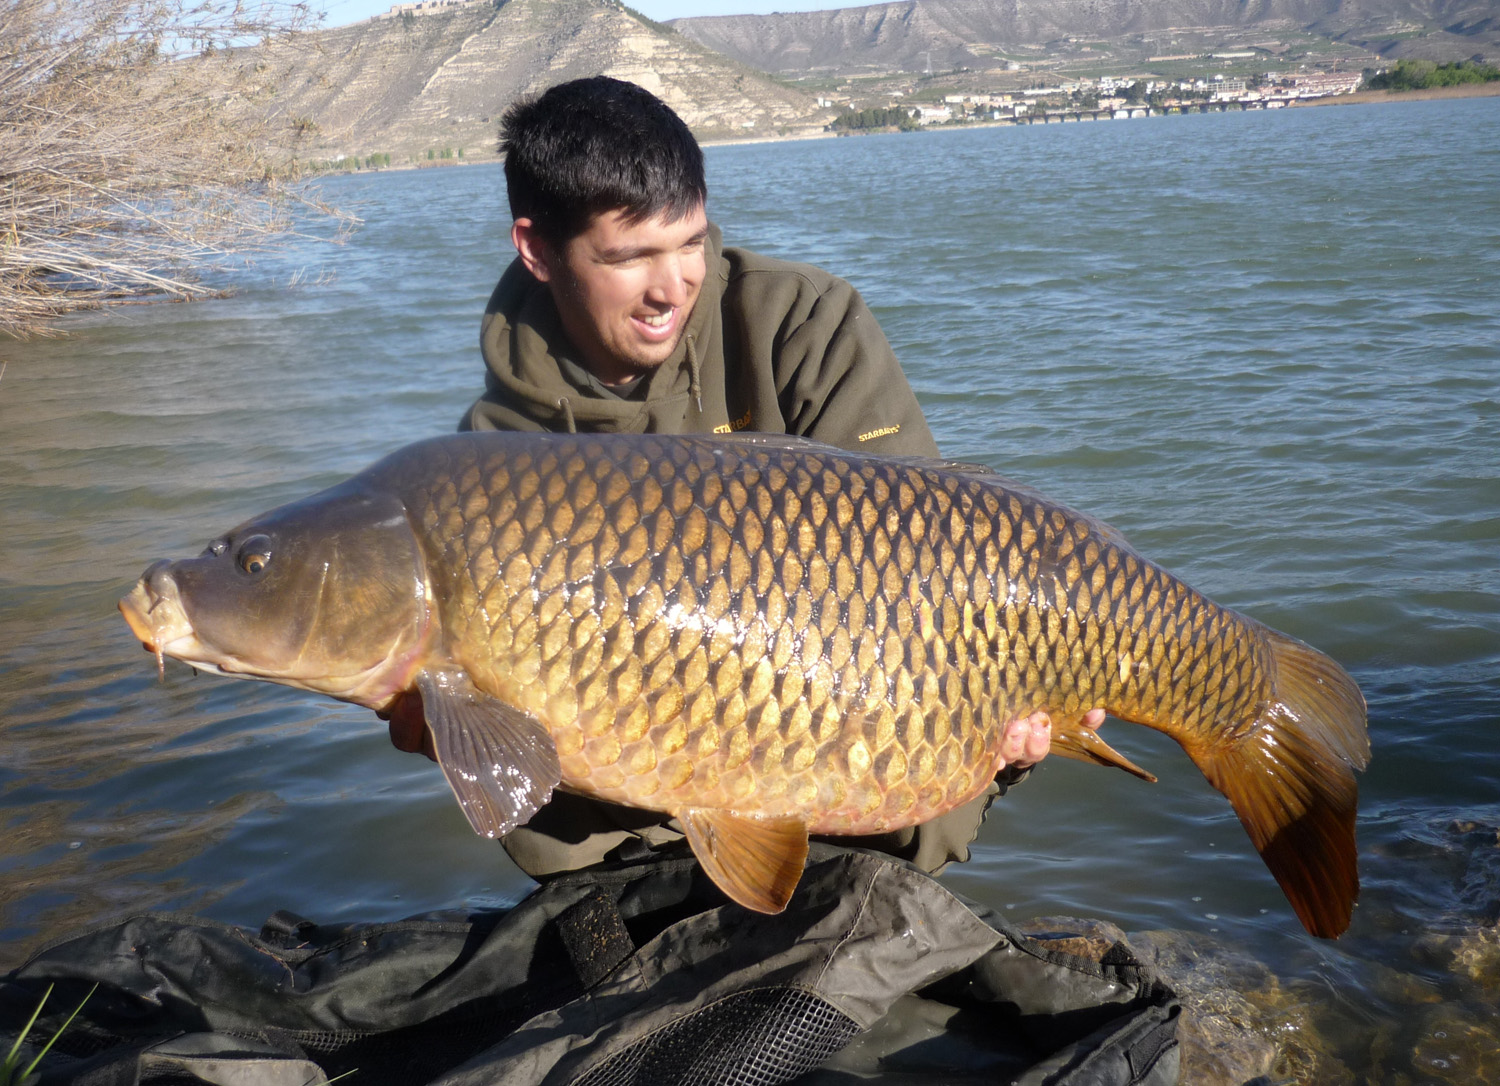 http://starbaits.com/fichiers/images/team/gallery/DUCERE_Cedric/15-DUCERE-CEDRIC.jpg